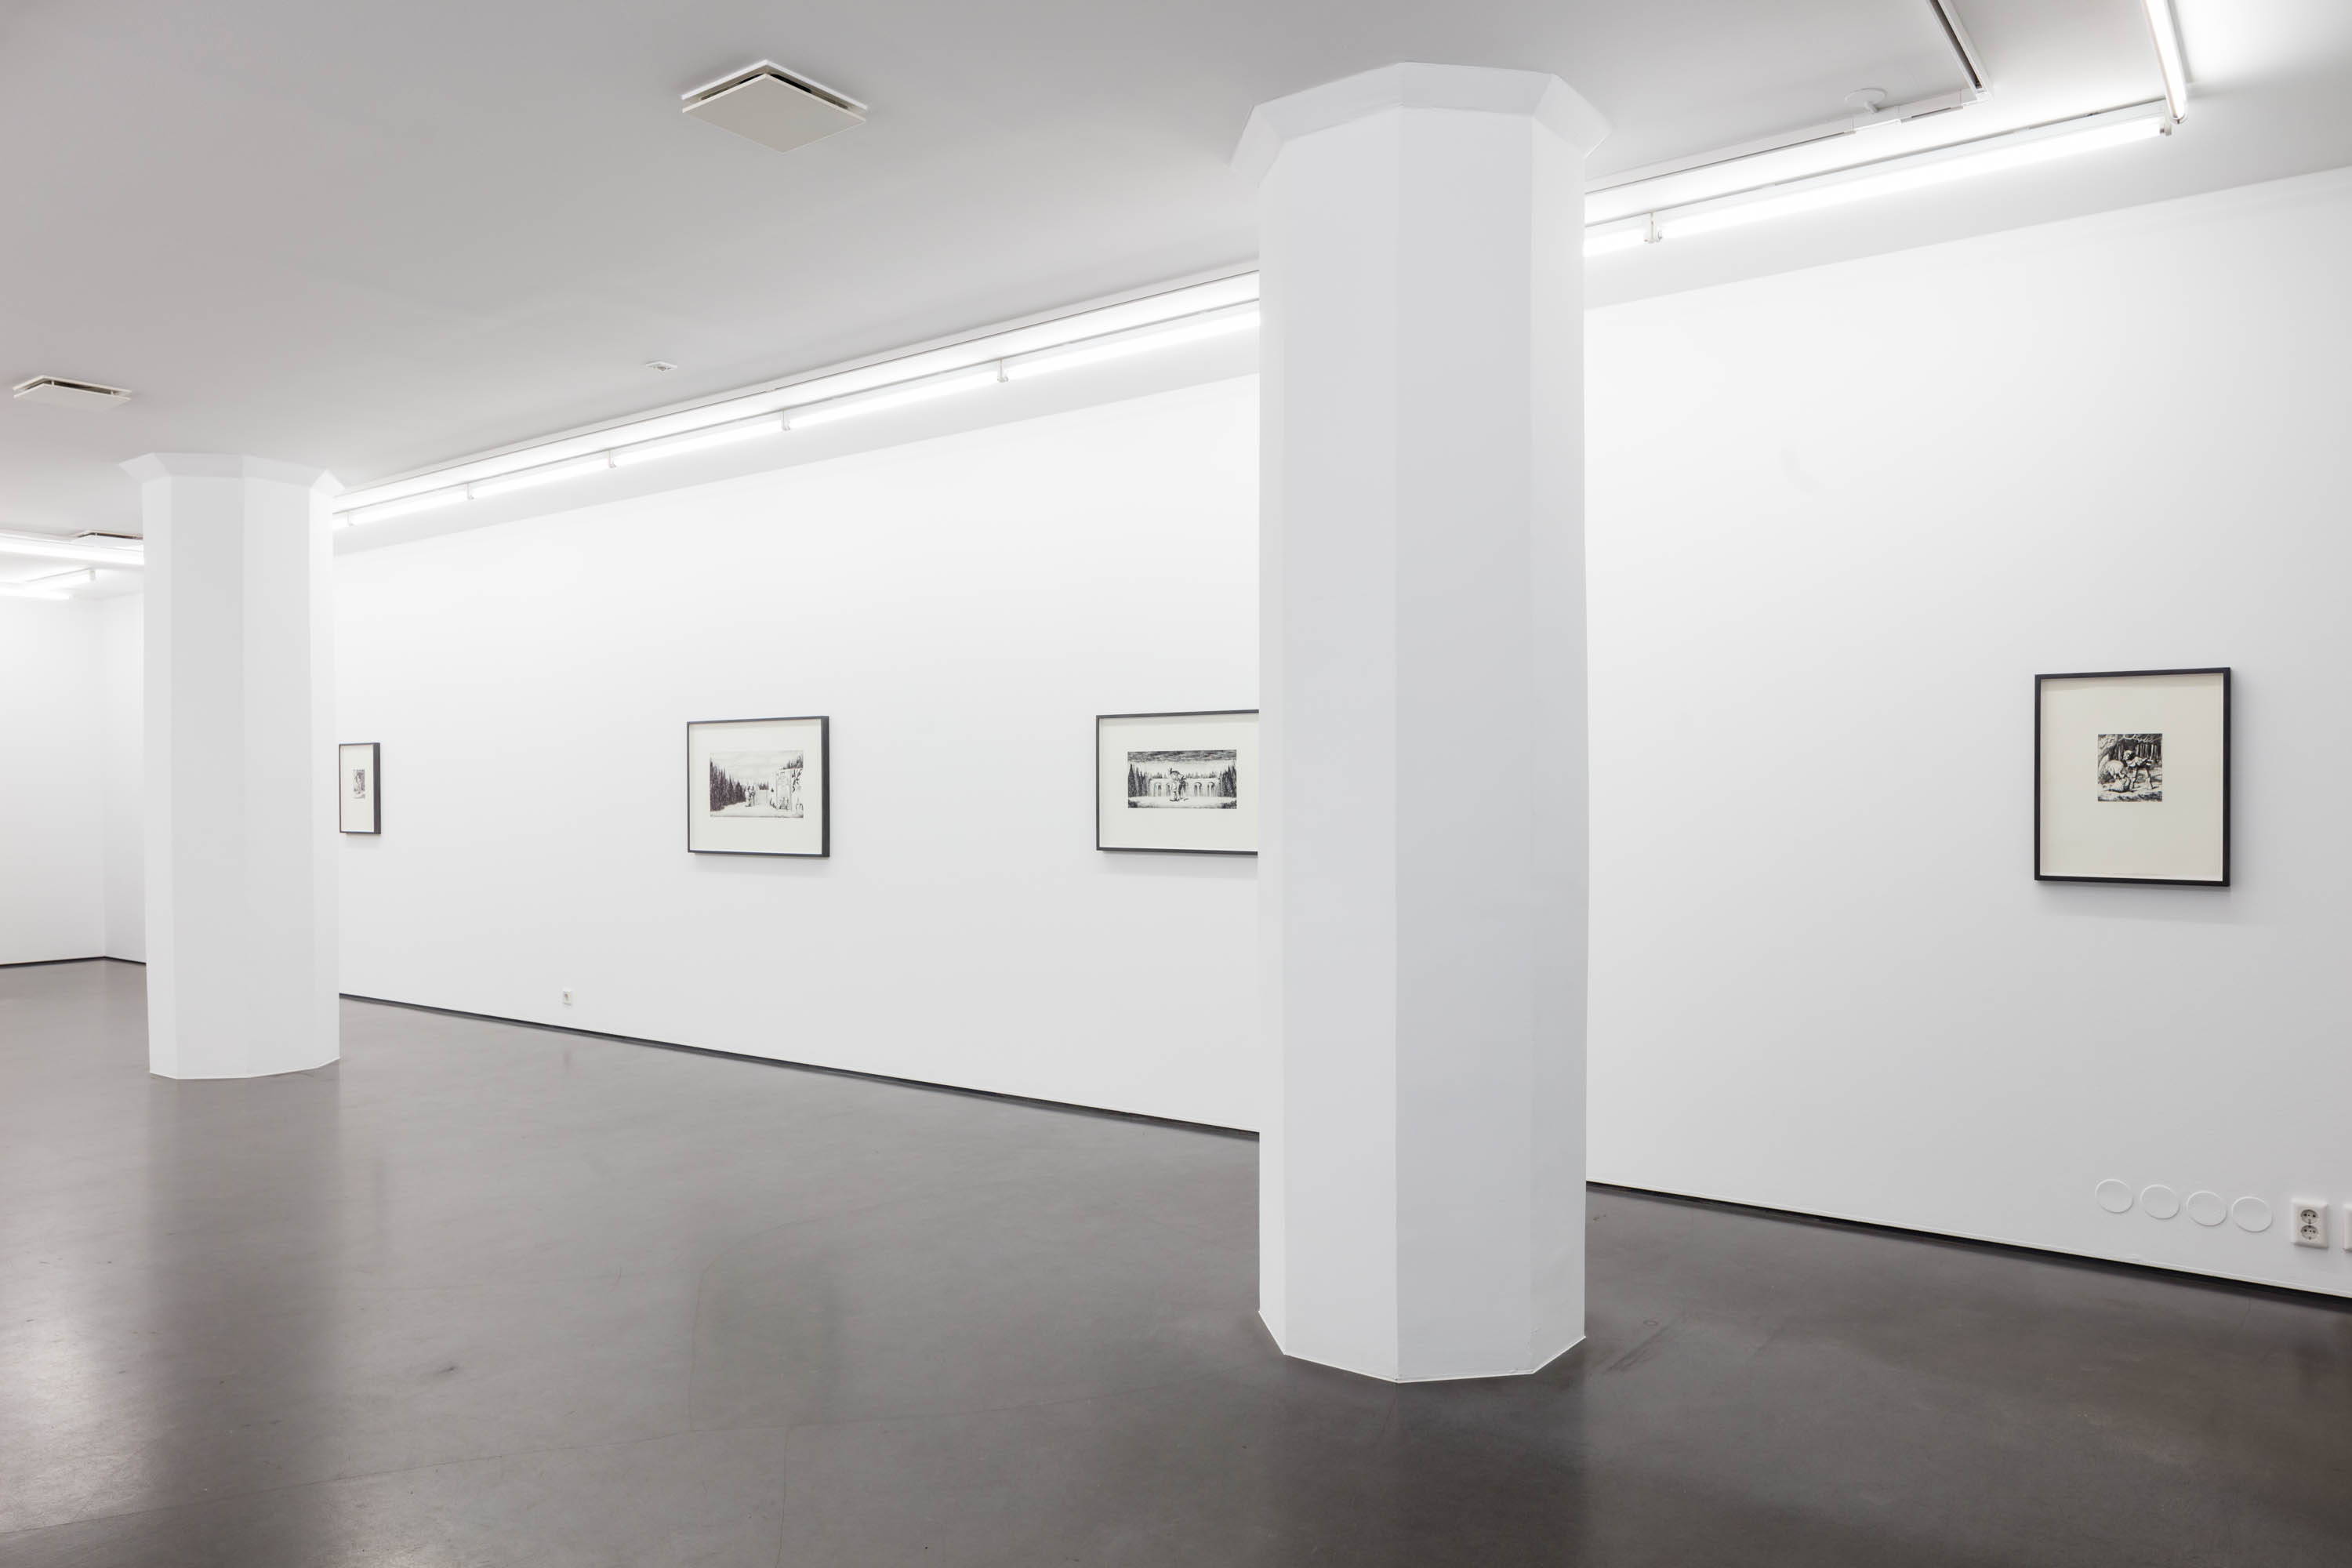 Subterranean, Installation view